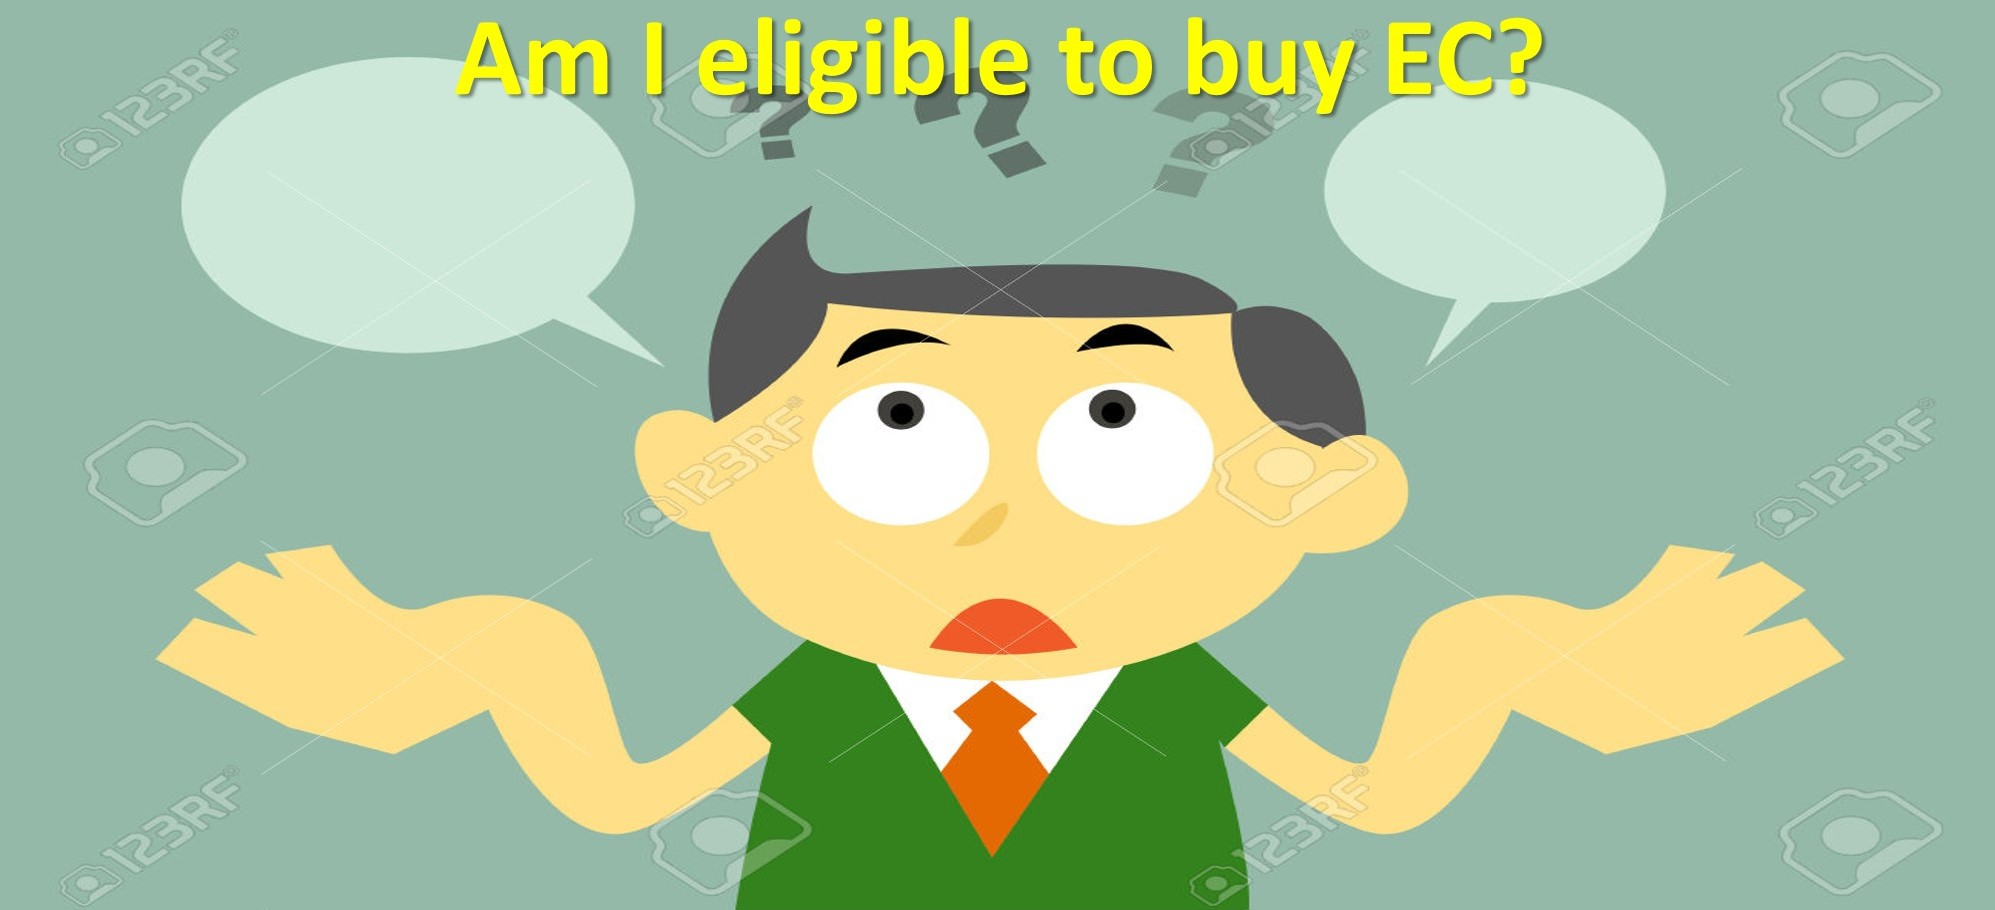 eligibility to buy EC